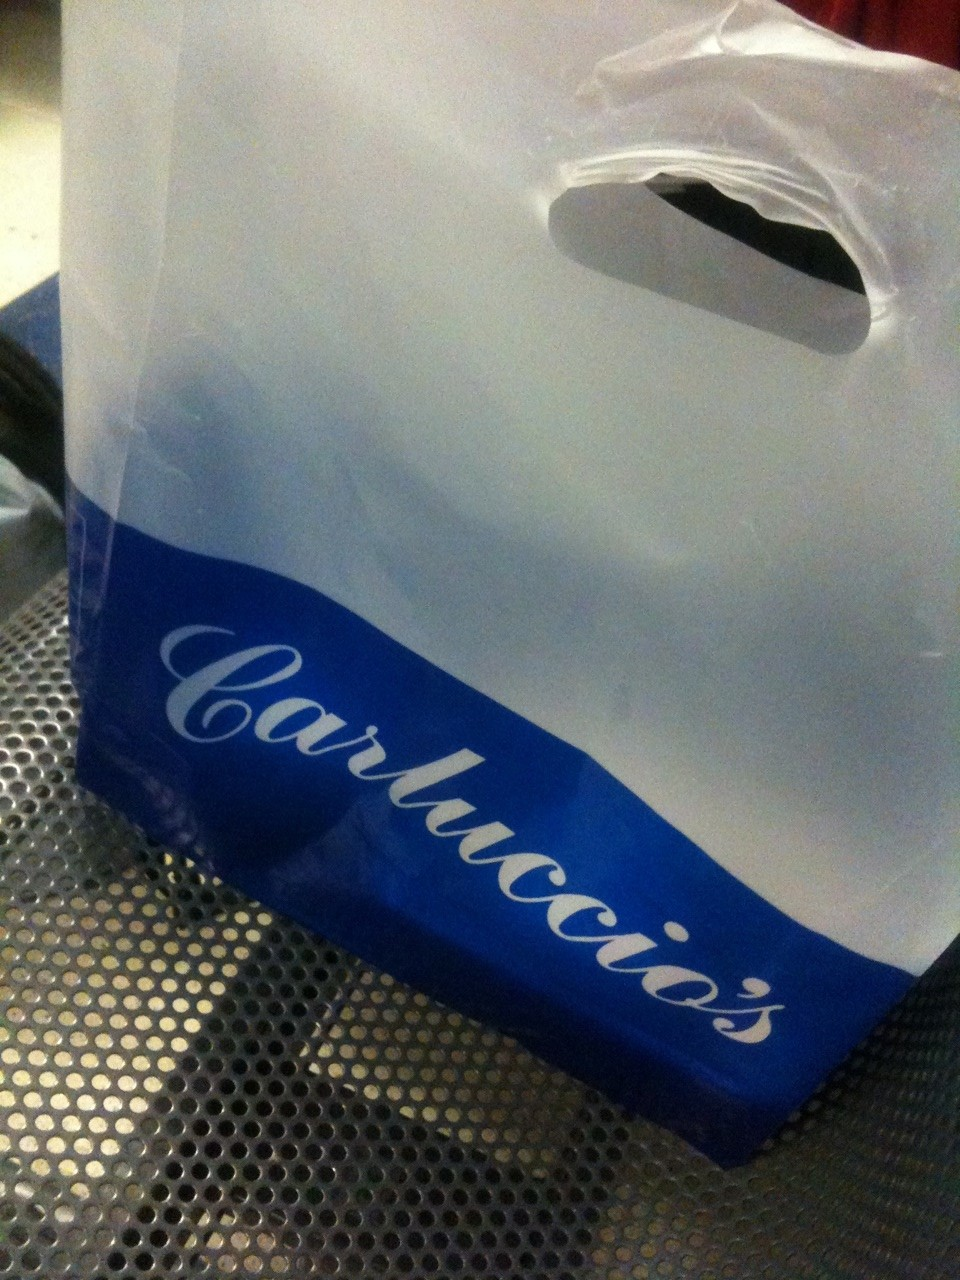 Carluccio's take away